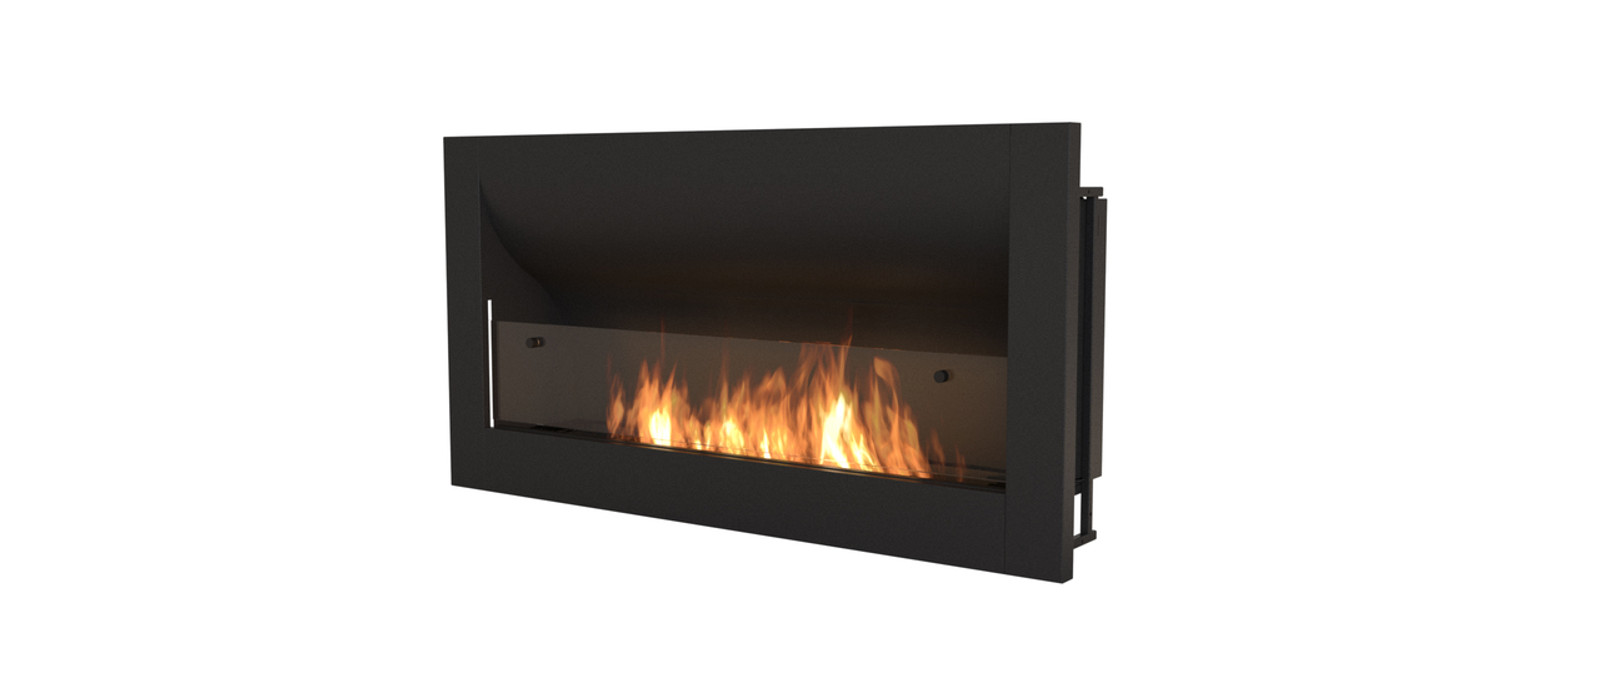 Firebox 1400CV (Cruved Series)